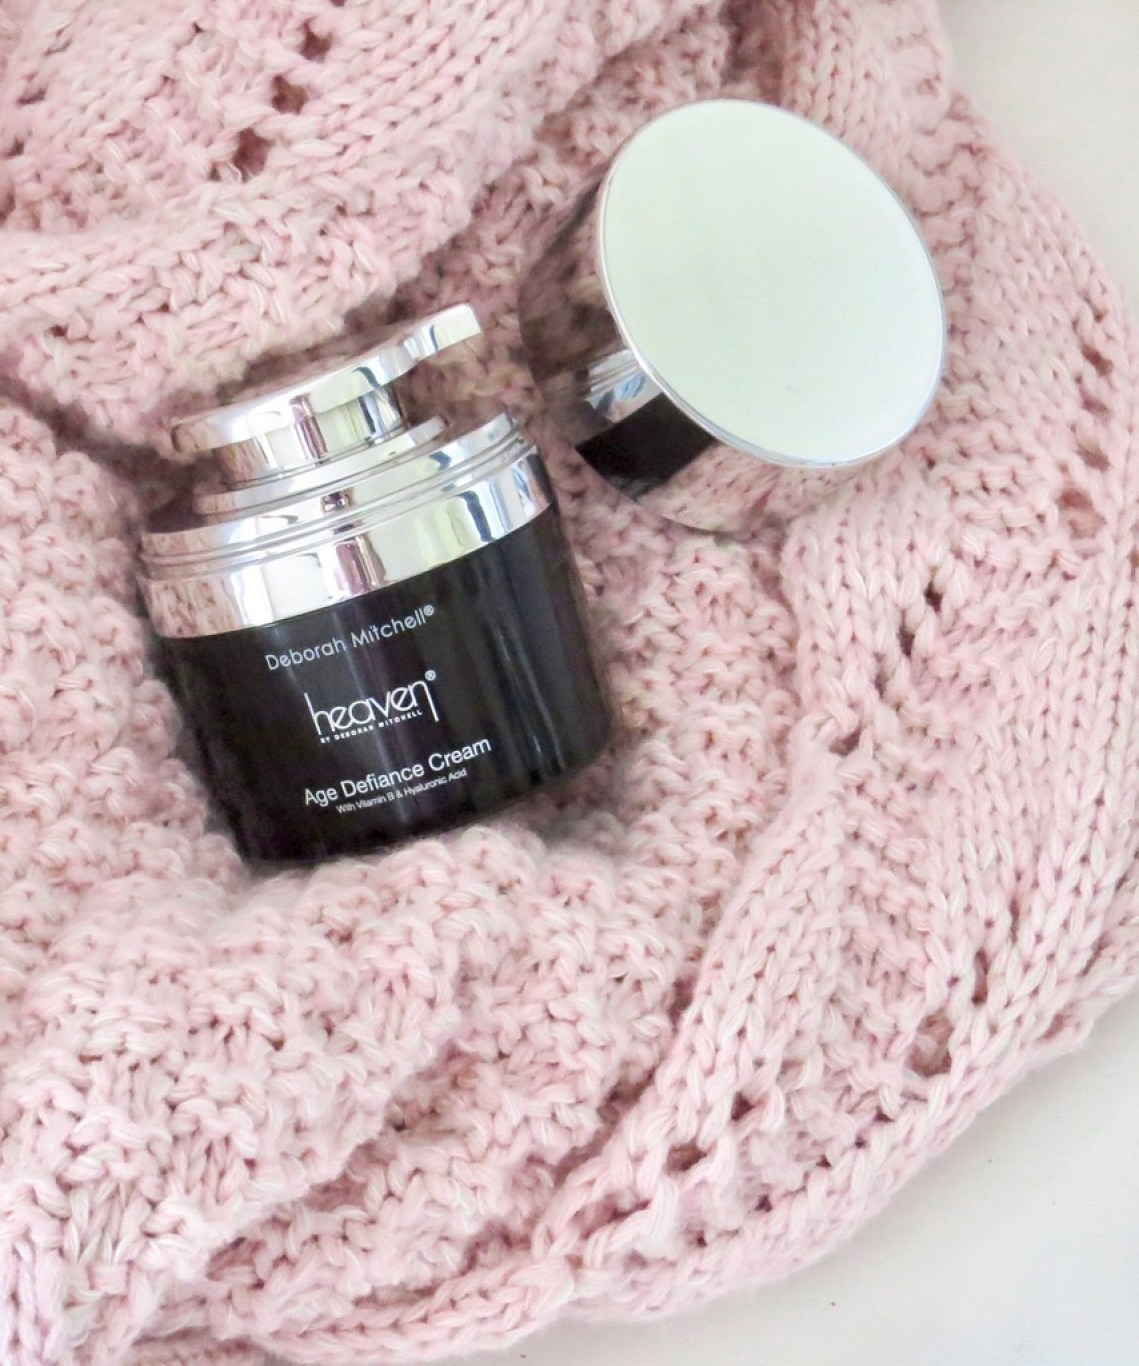 image shows the pot of Age Defiance cream placed on a pale pink blanket.